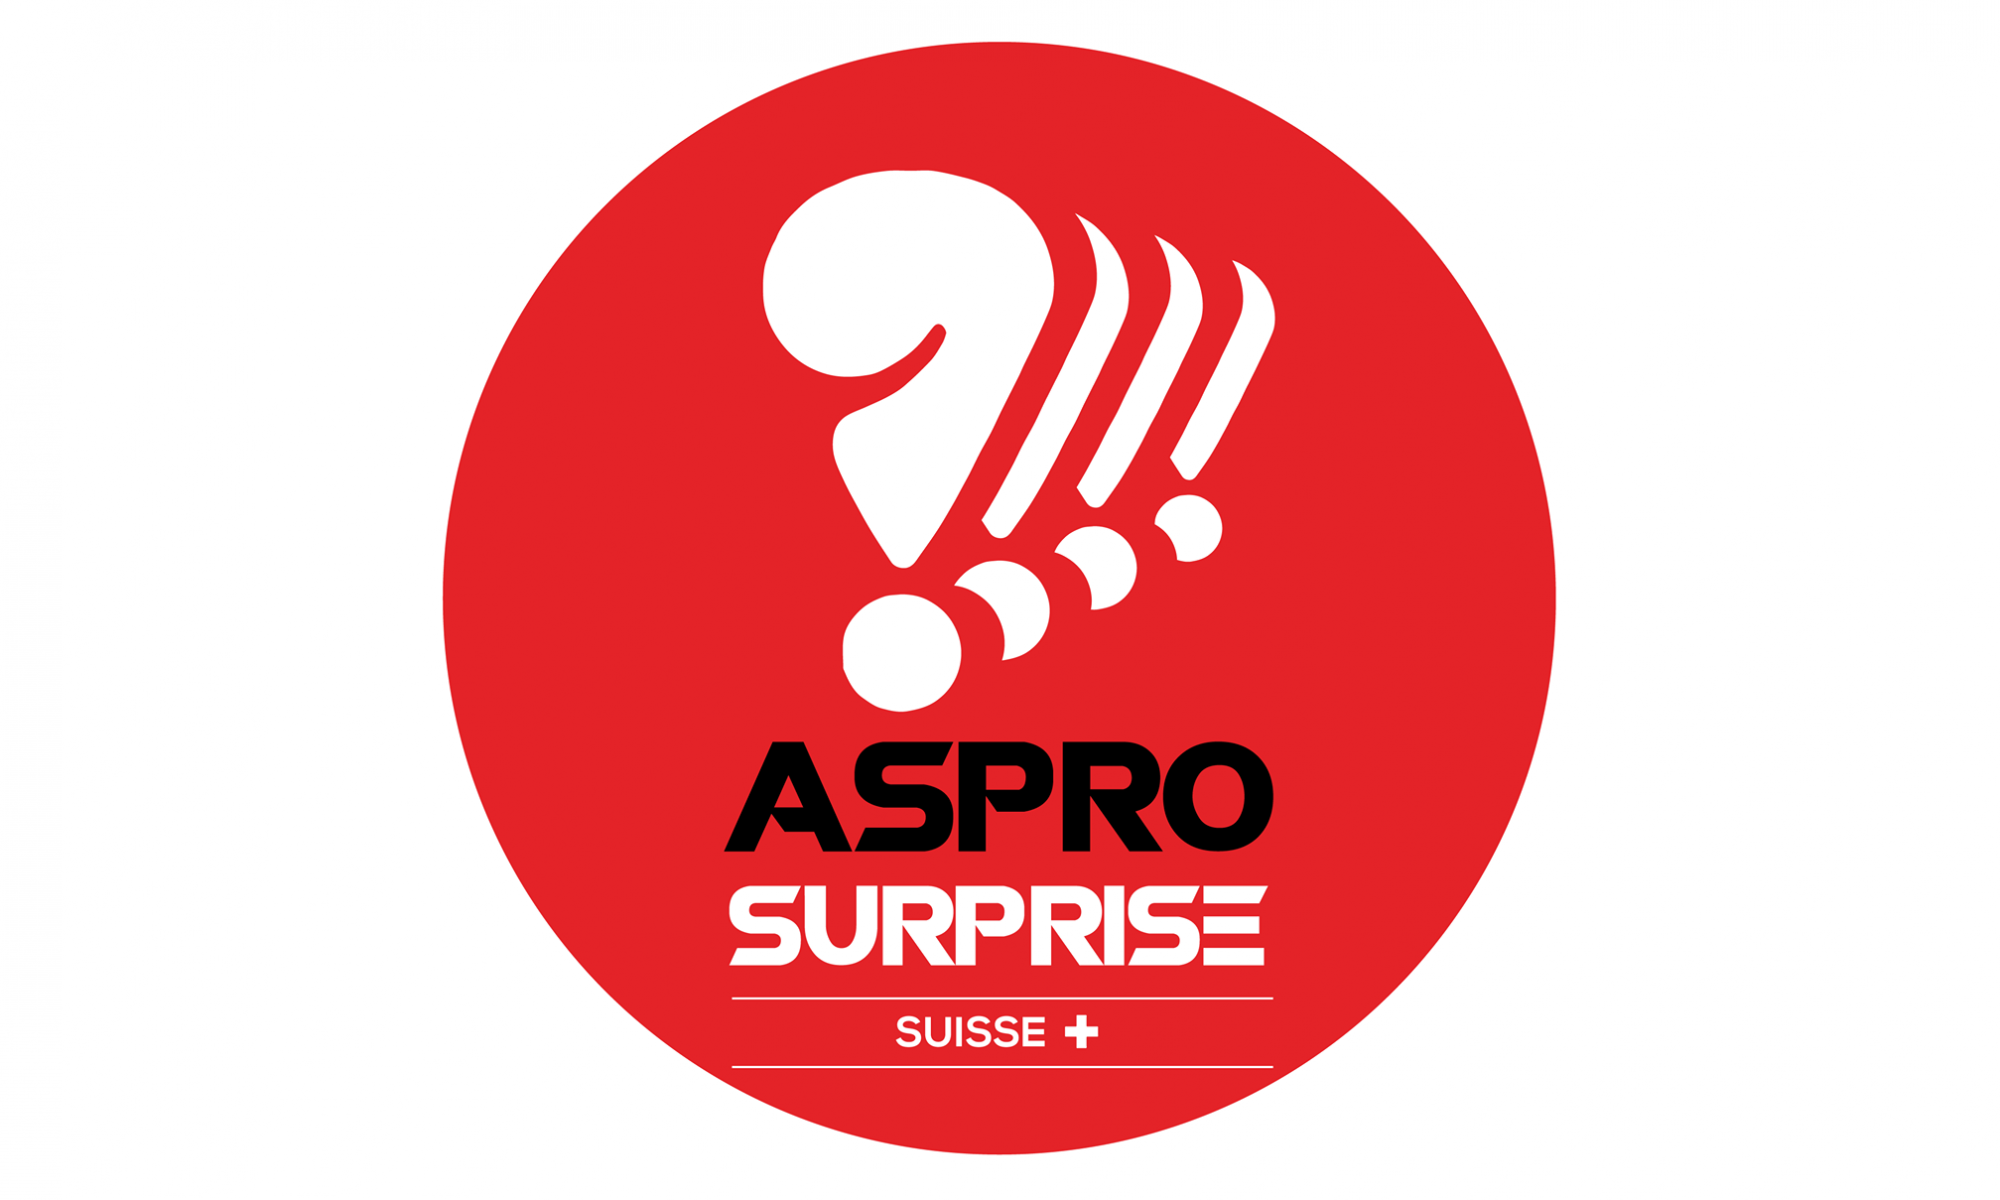 aspro_surprise_logo.png